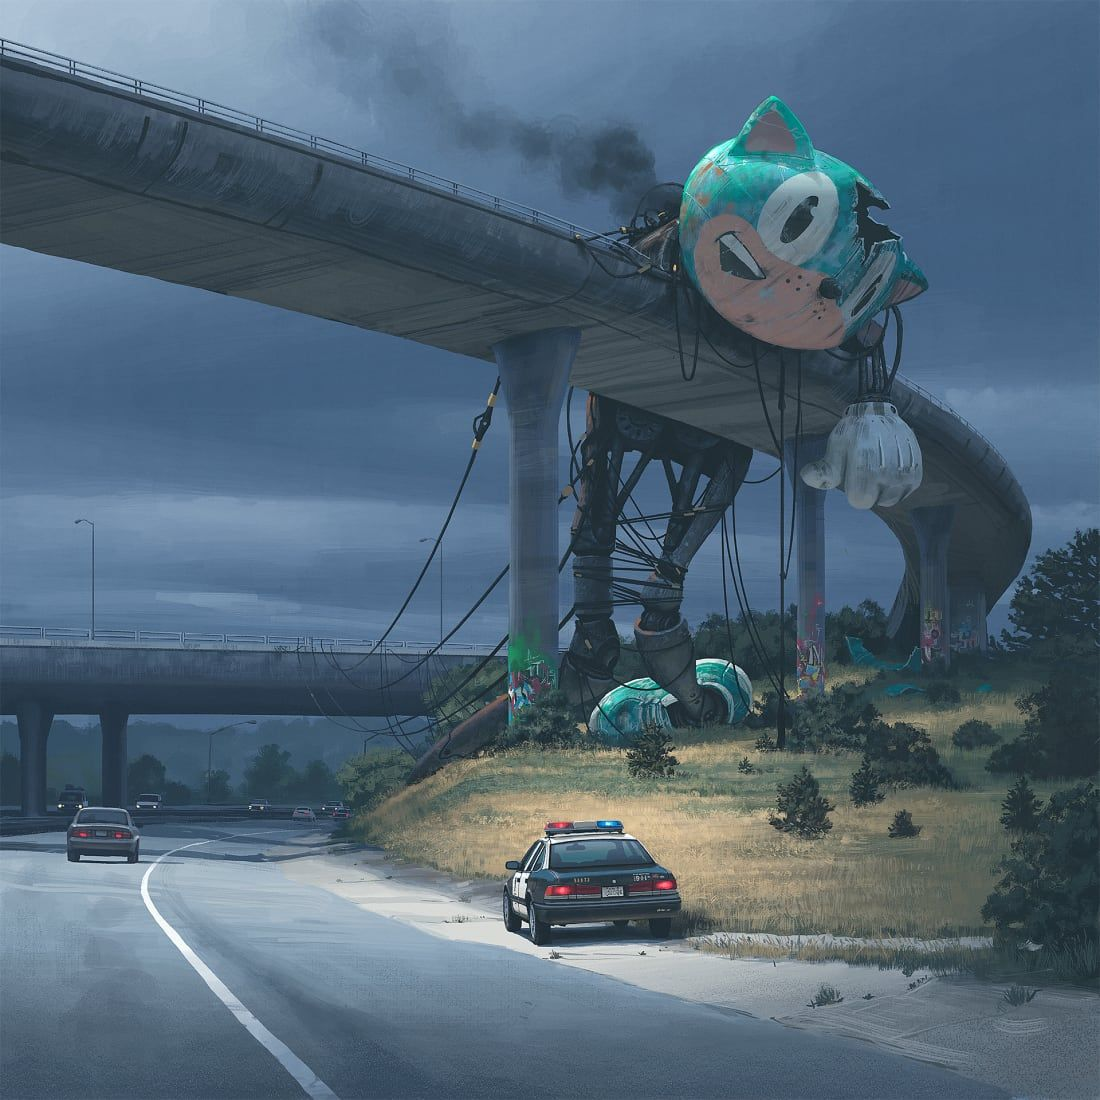 Phoebe Gardiner On Twitter Perfect For A Friday Afternoon Simon Stalenhag S Hauntingly Beautiful Retro Scifi Art Https T Co T3oiiehba3 Cnnstyle Fridayfeeling And An Amazon Series On The Horizon Talesfromtheloop Https T Co E5mx8joxbe